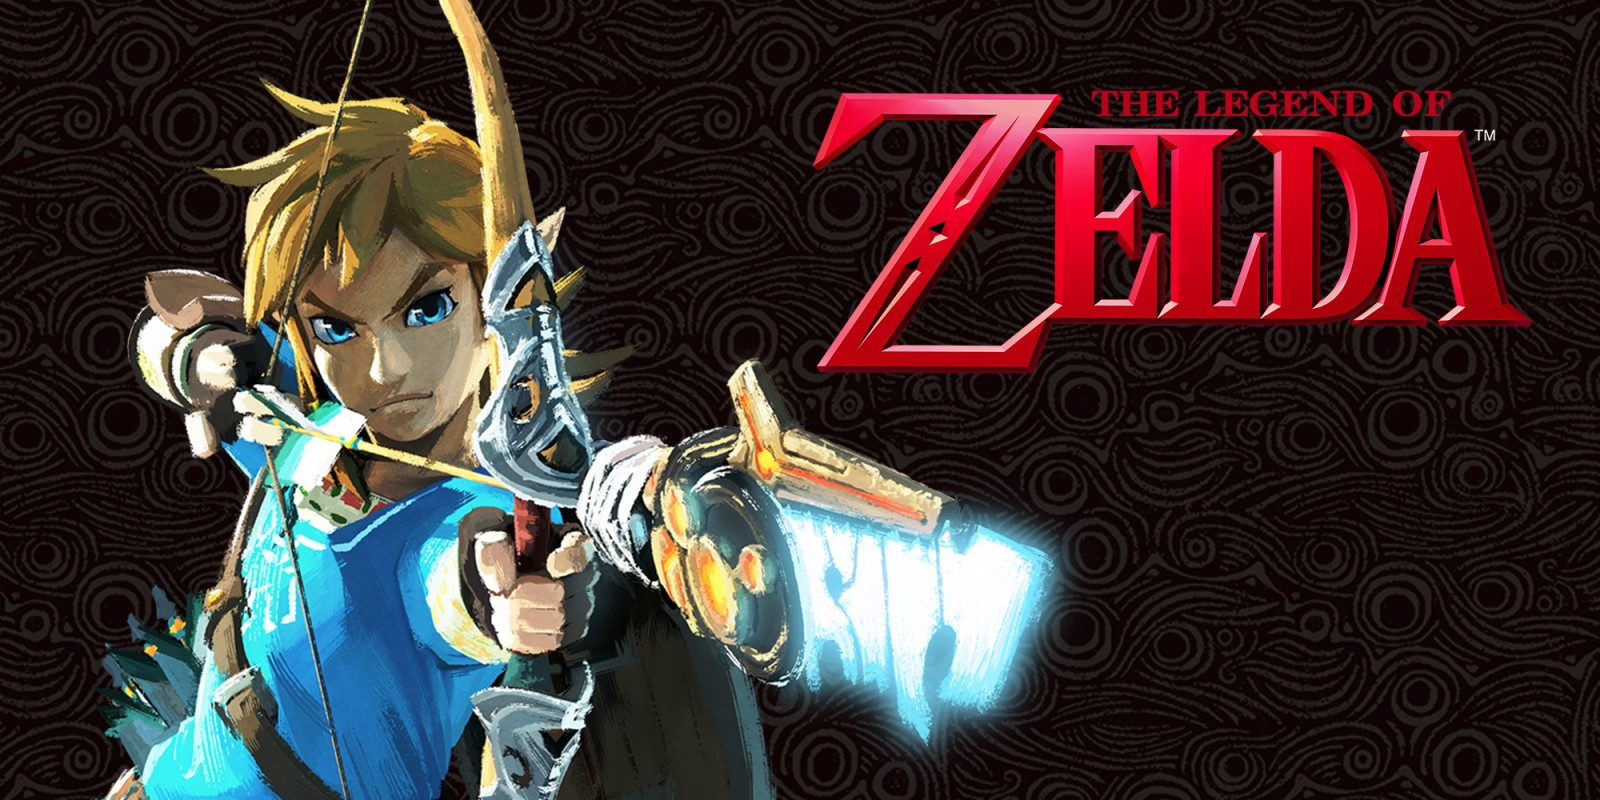 Image result for the legend of zelda banner